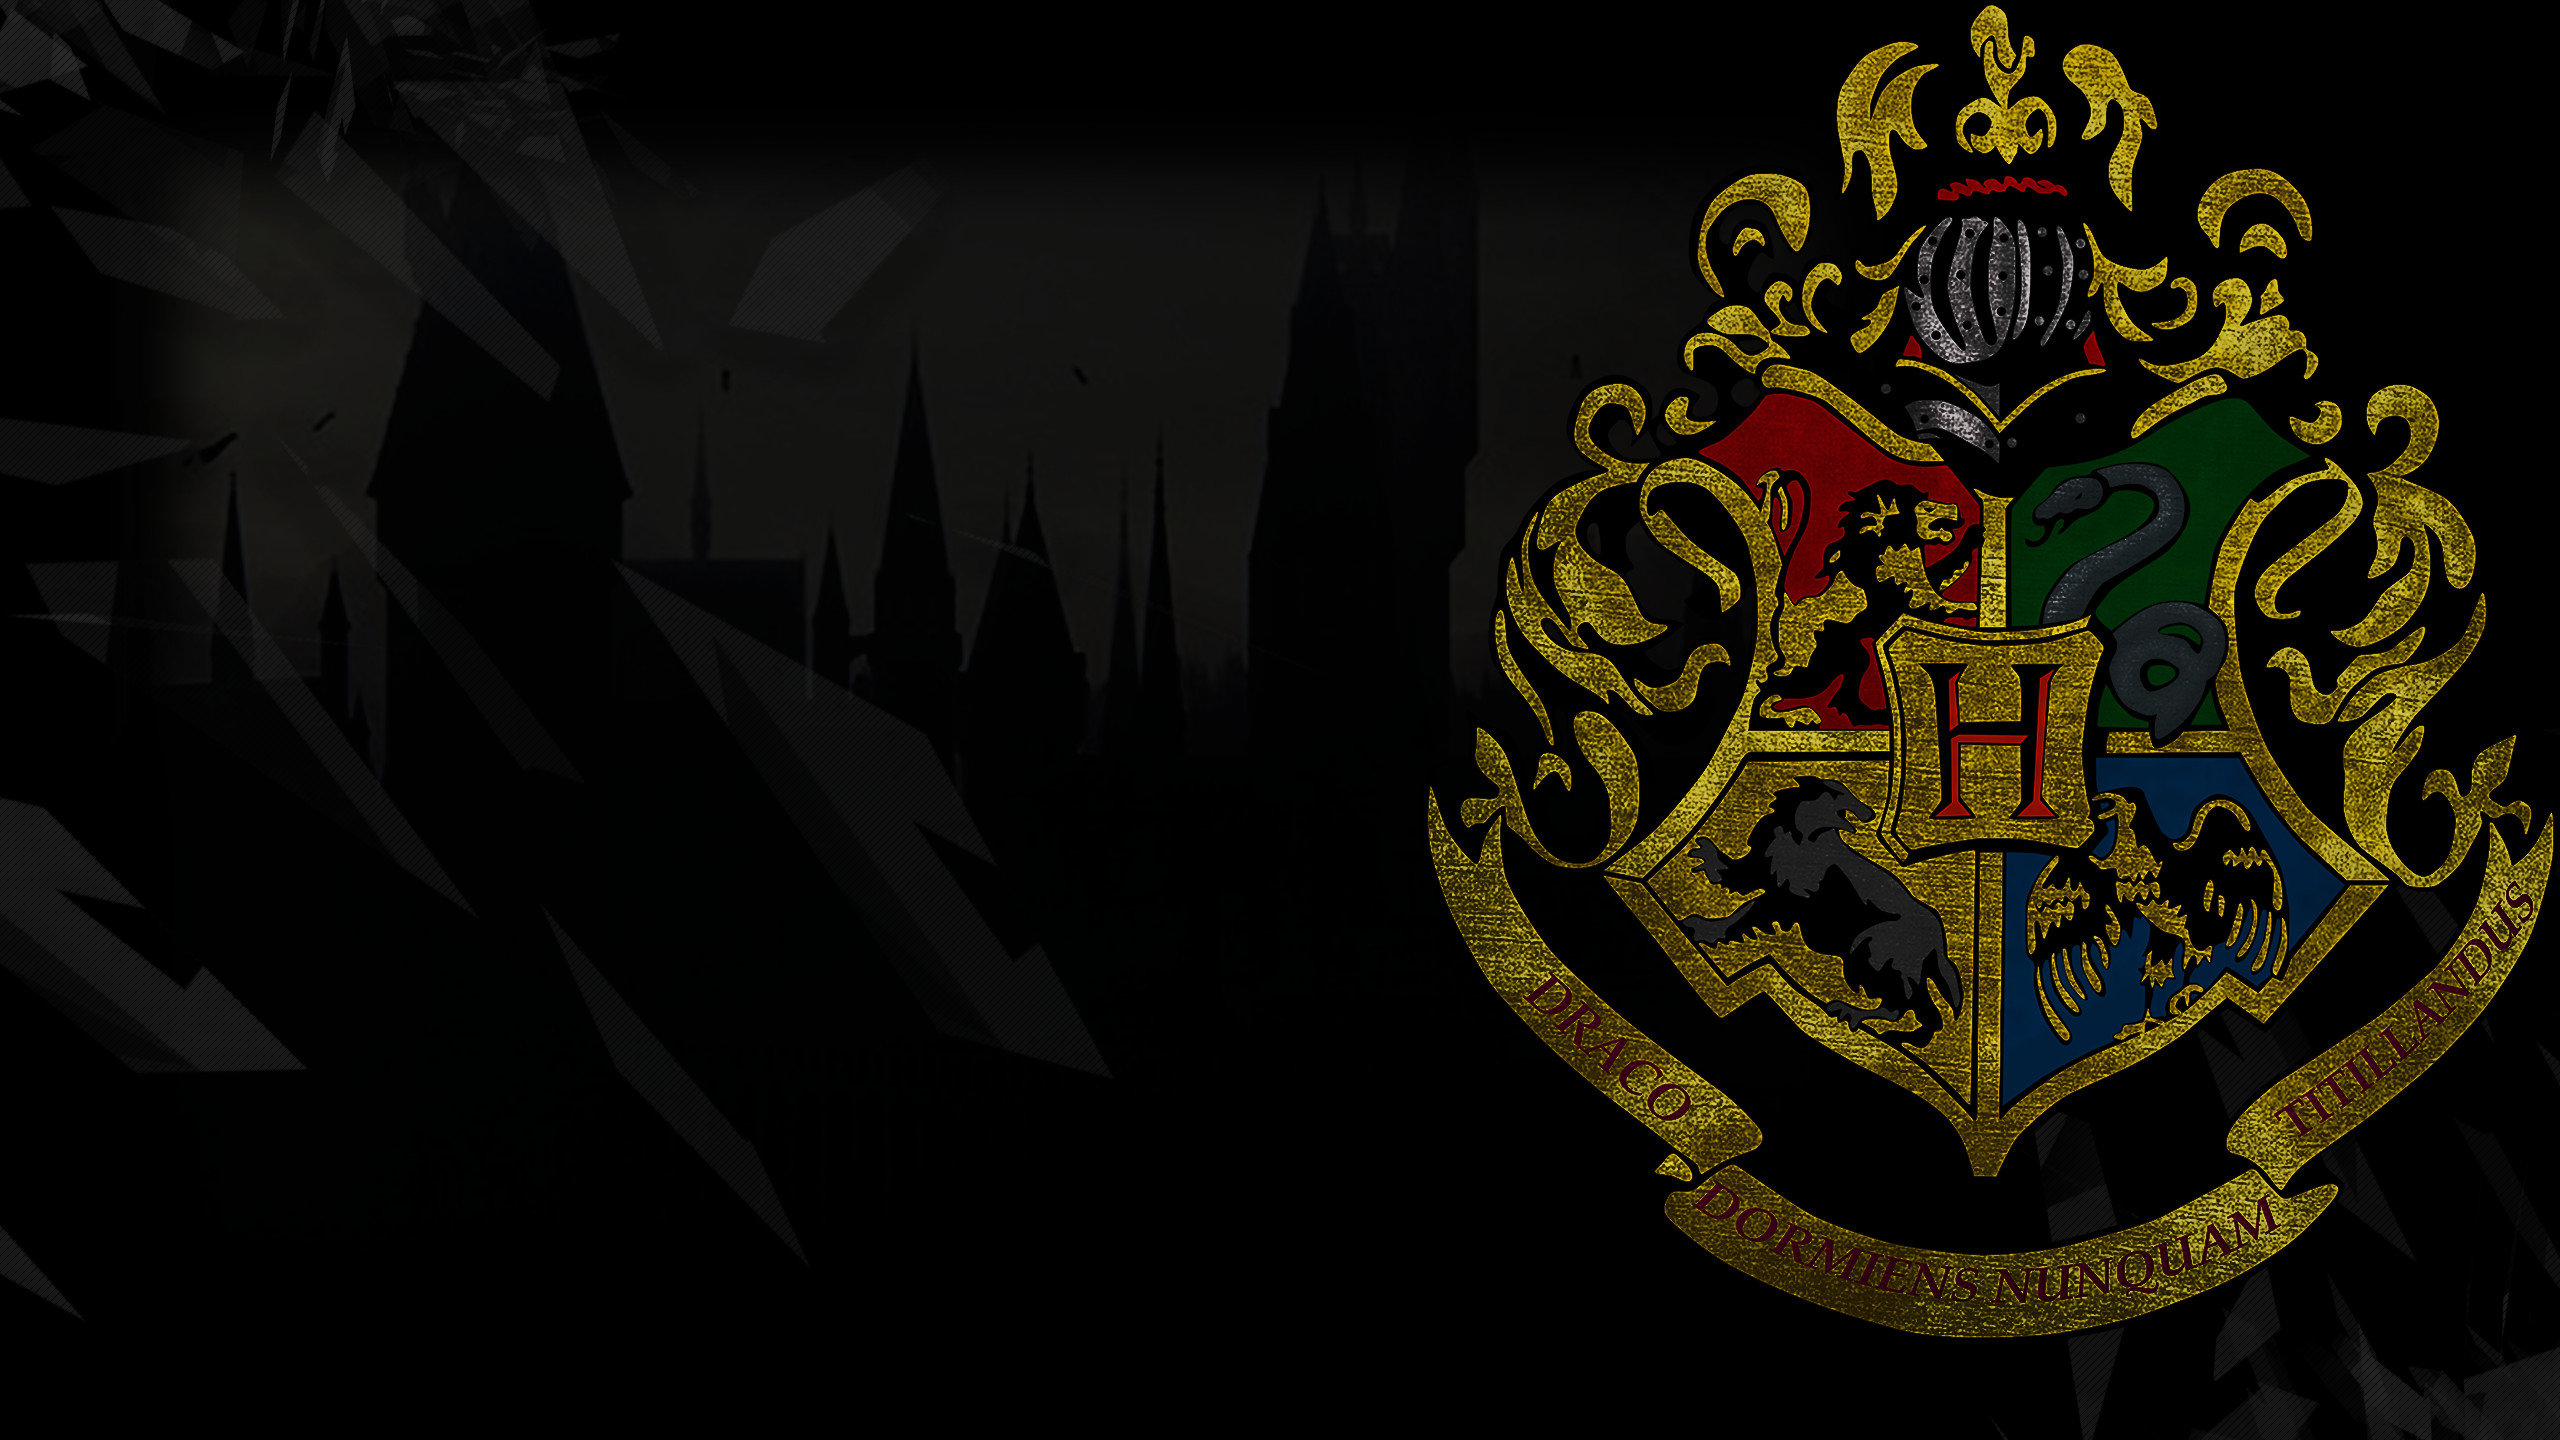 High Resolution Harry Potter Hd 2560x1440 Wallpaper ID463353 For PC